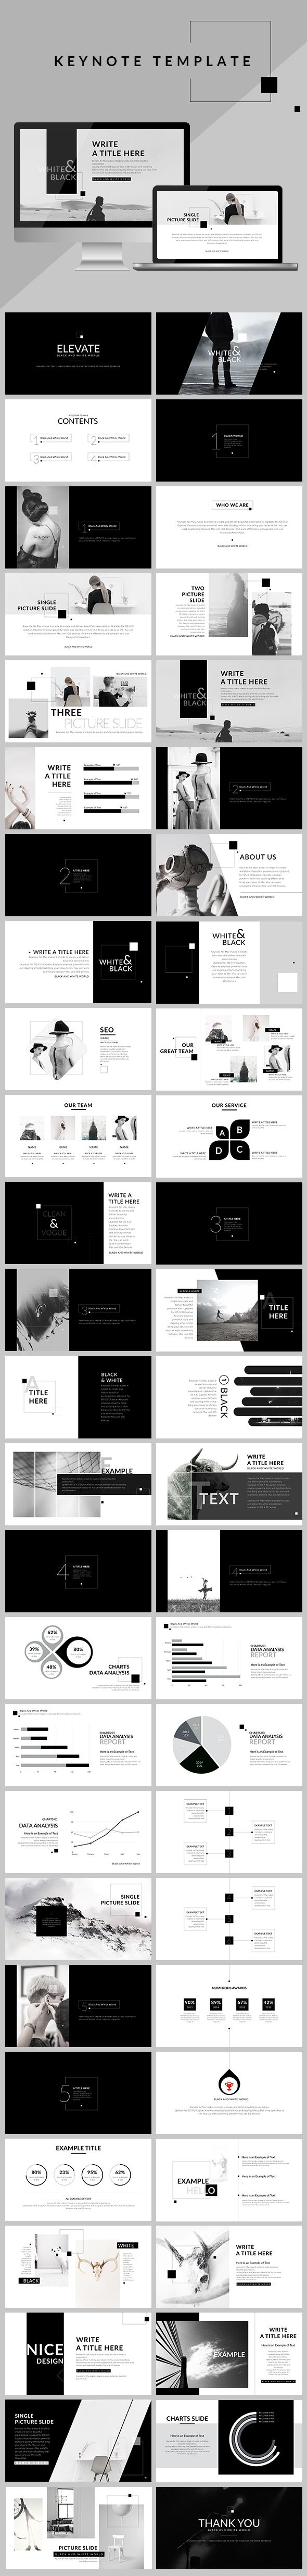 Black & White - Clean Keynote Template - Creative Keynote Templates More